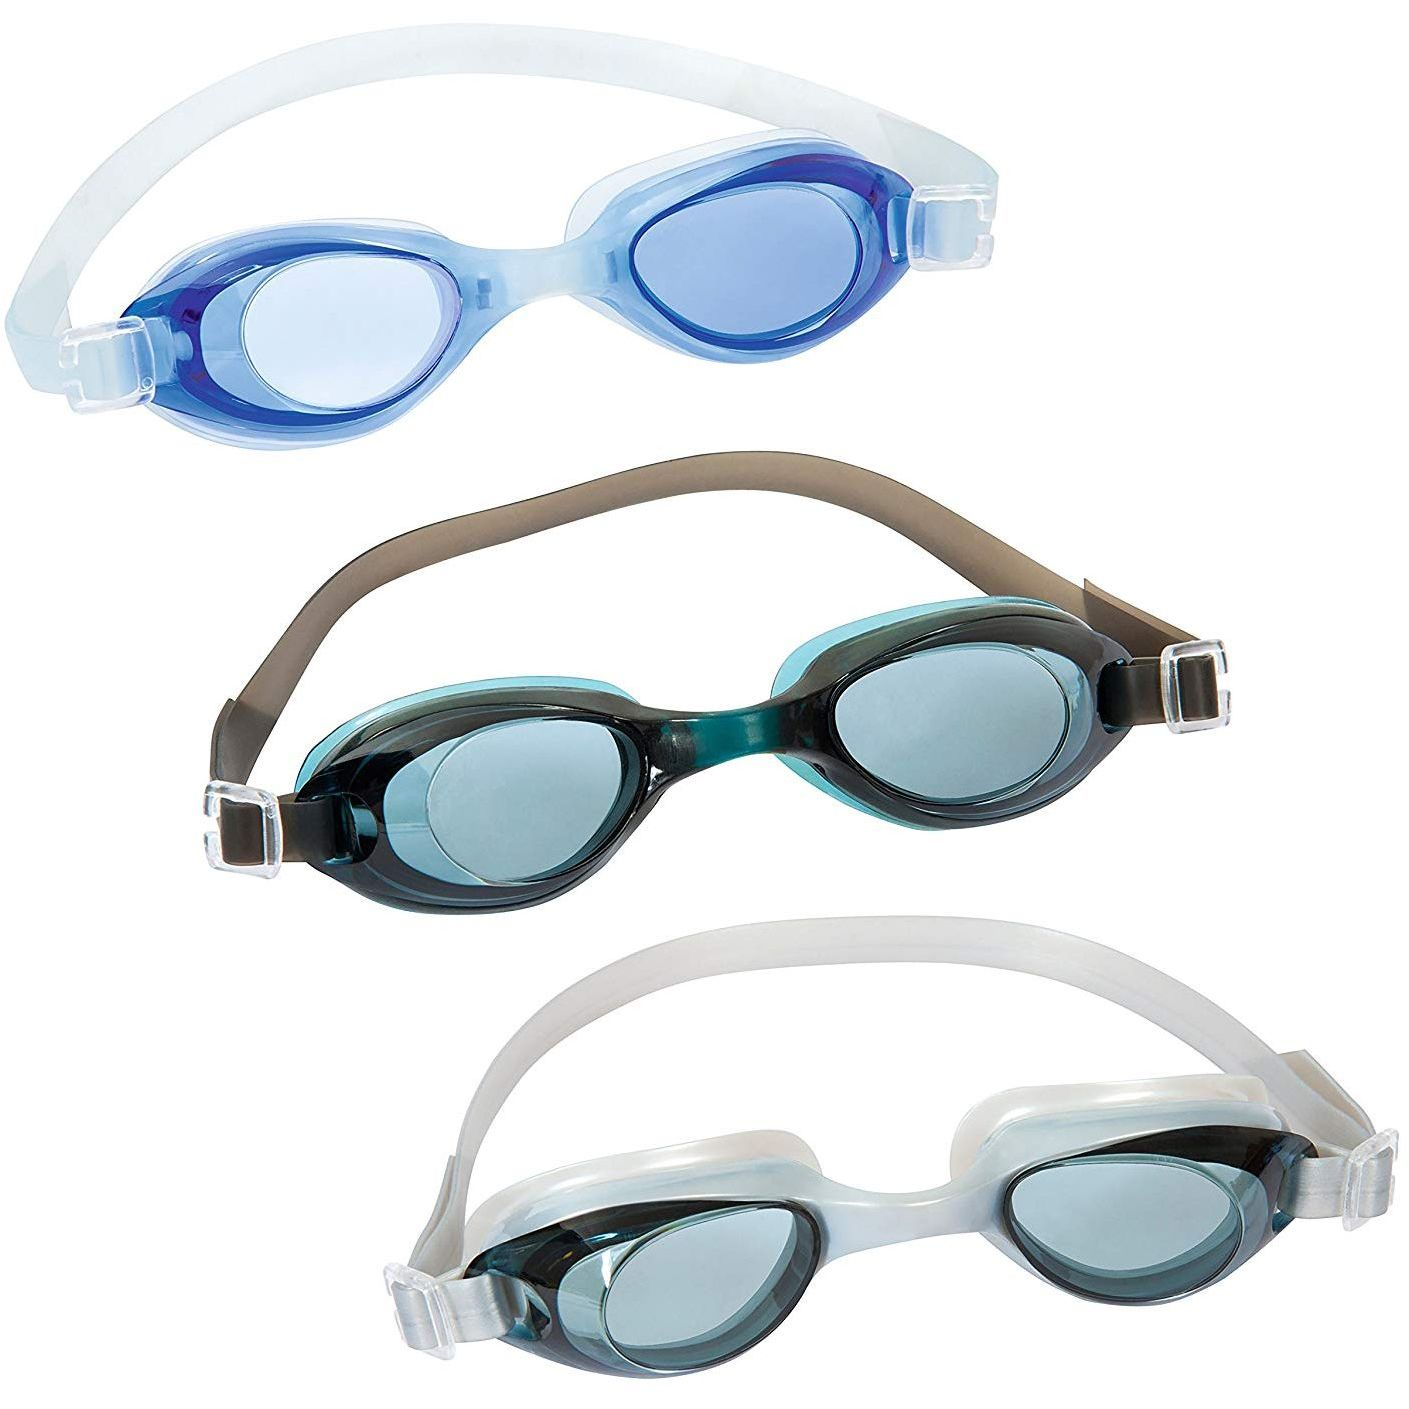 BESTWAY HYDRO PRO SWIMMING GOGGLES